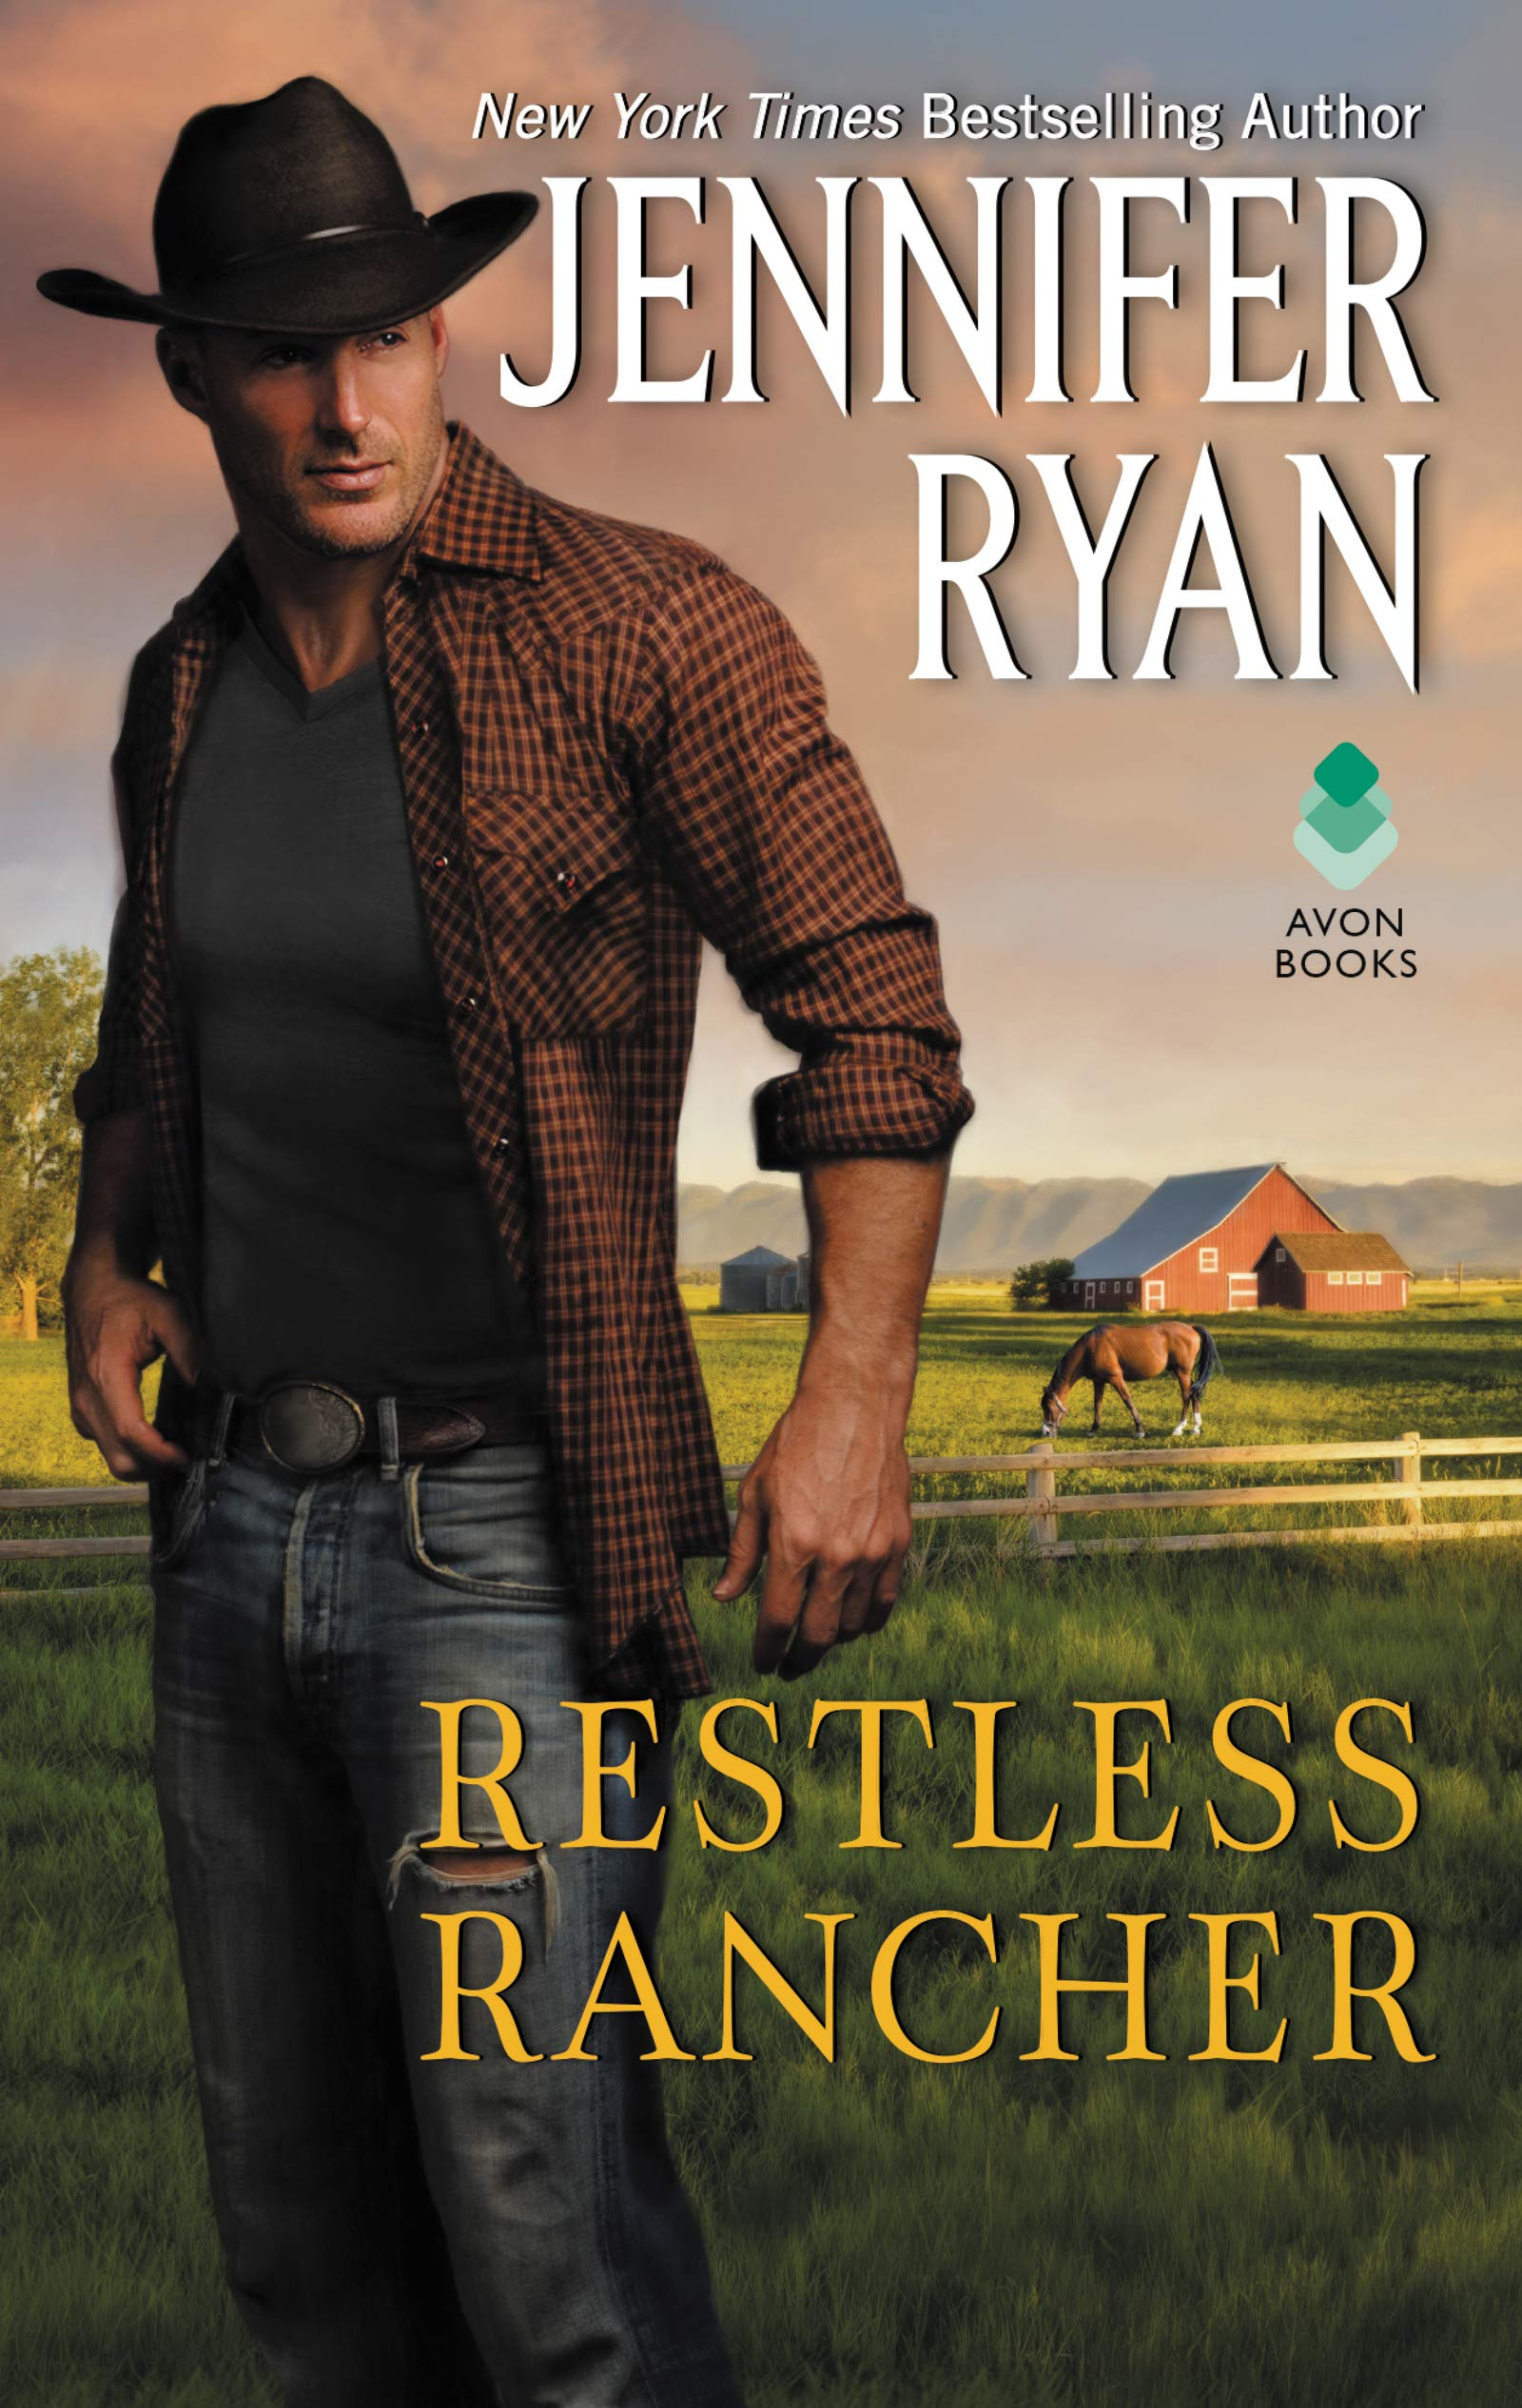 Restless Rancher (Wild Rose Ranch #2)